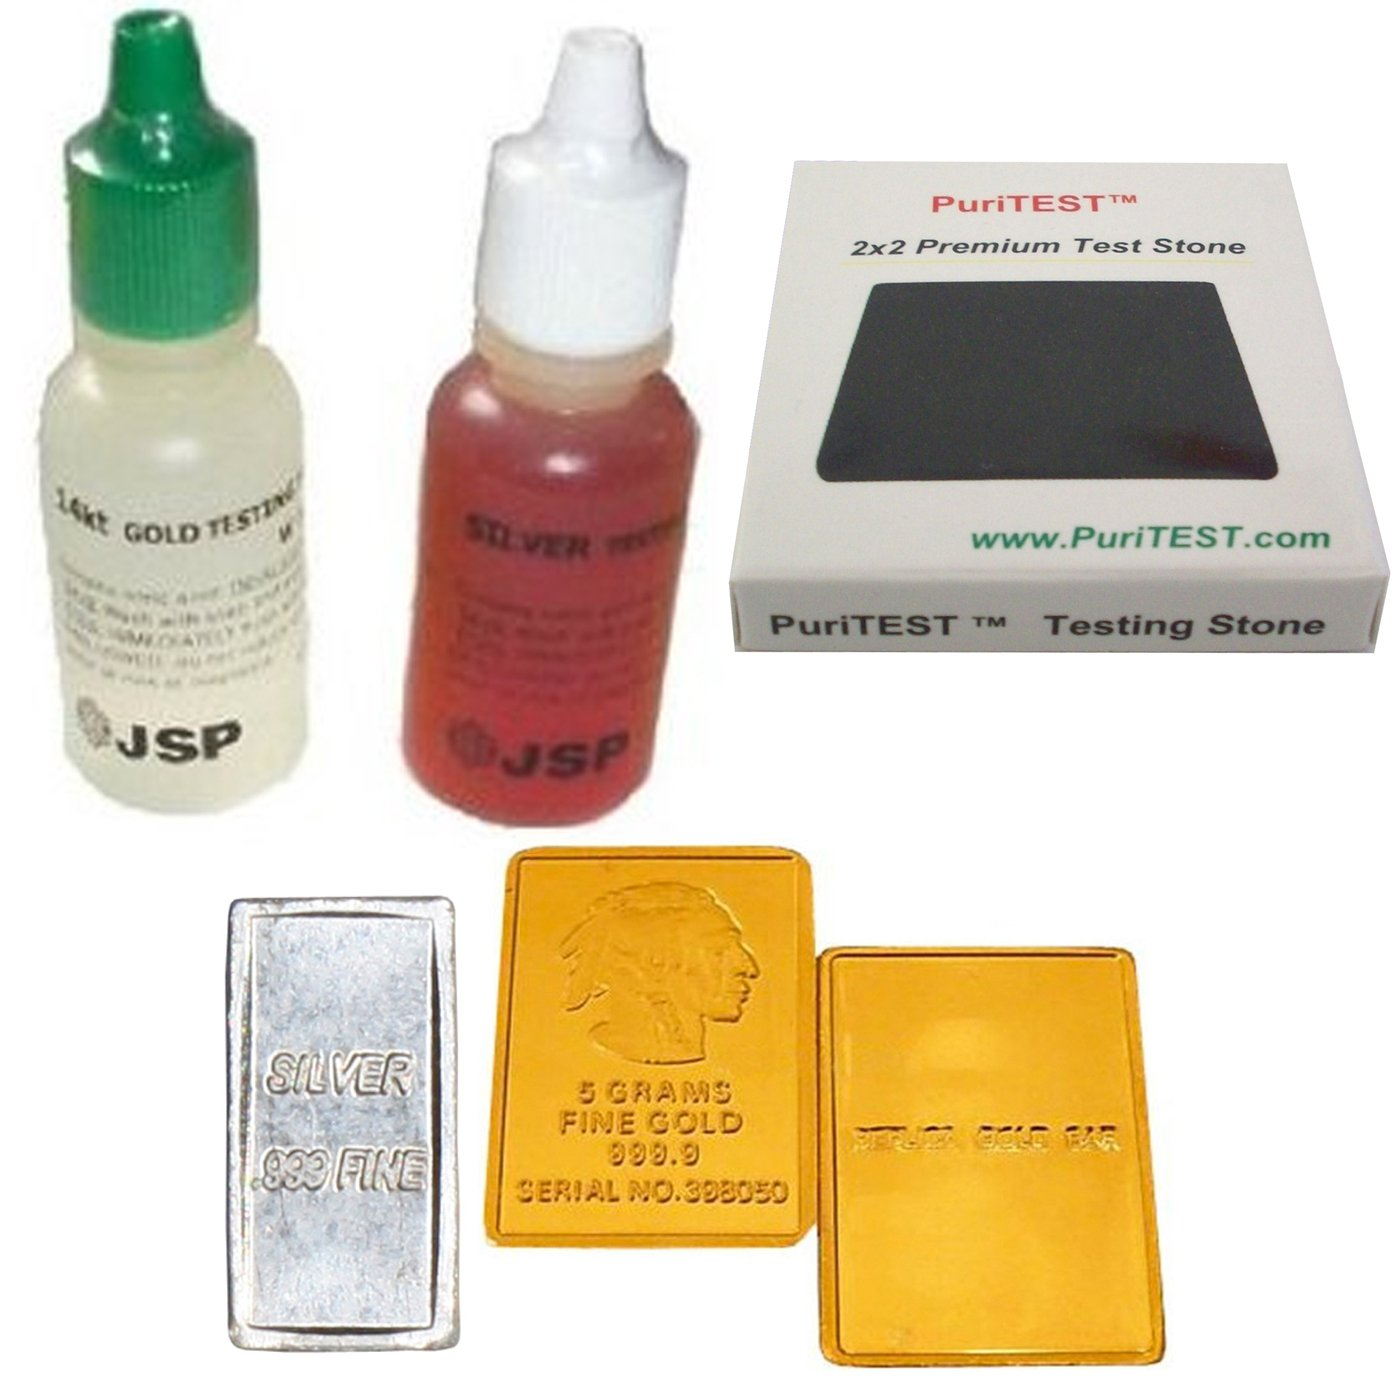 Gold Silver Test Acid Tester 14k Testing Stone Detect Metal 999 Sterling Jewelry + FAKE Gold & REAL Silver Bar Samples JSP/PuriTEST 14k+silvr+a1+c1+C15